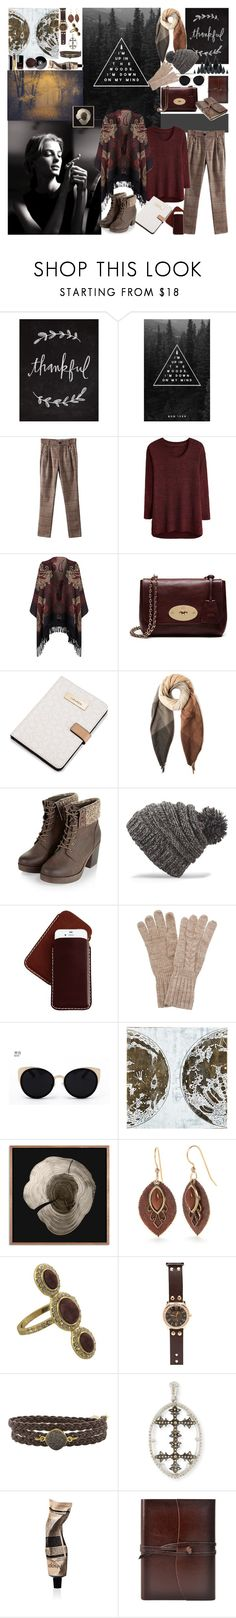 I'm down on my mind ... by mariettamyan on Polyvore featuring мода, Mulberry, Alexandra Beth Designs, Silver Forest, Armenta, Karen Kane, Paul Smith, Dakine, White House Black Market and Una-Home